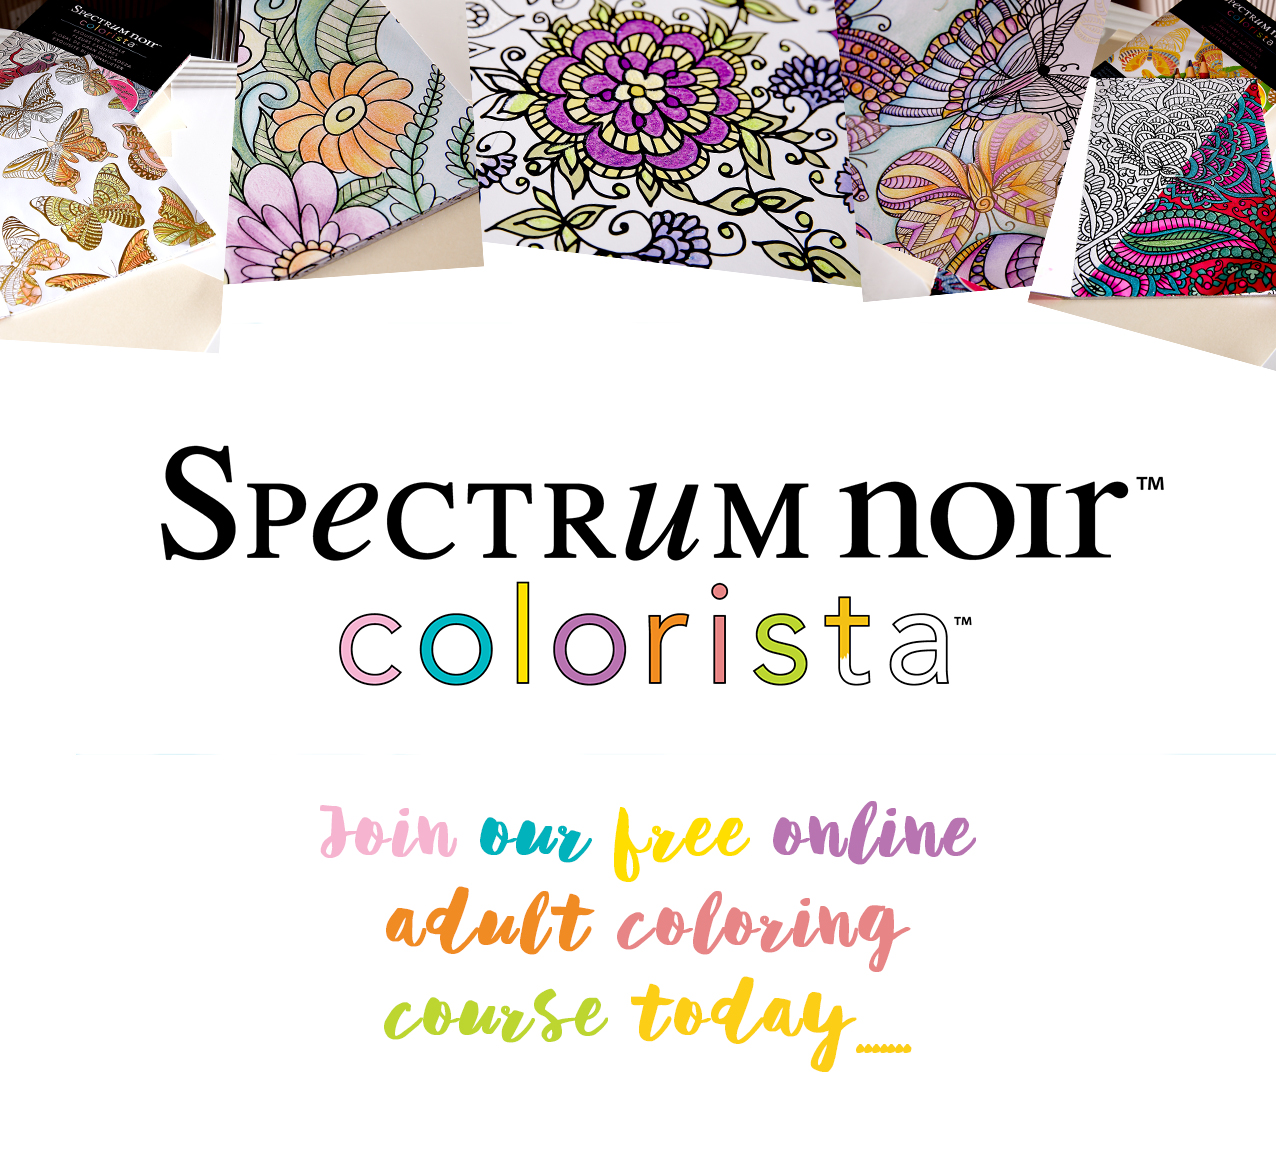 Sign up for our FREE Online Coloring Course!